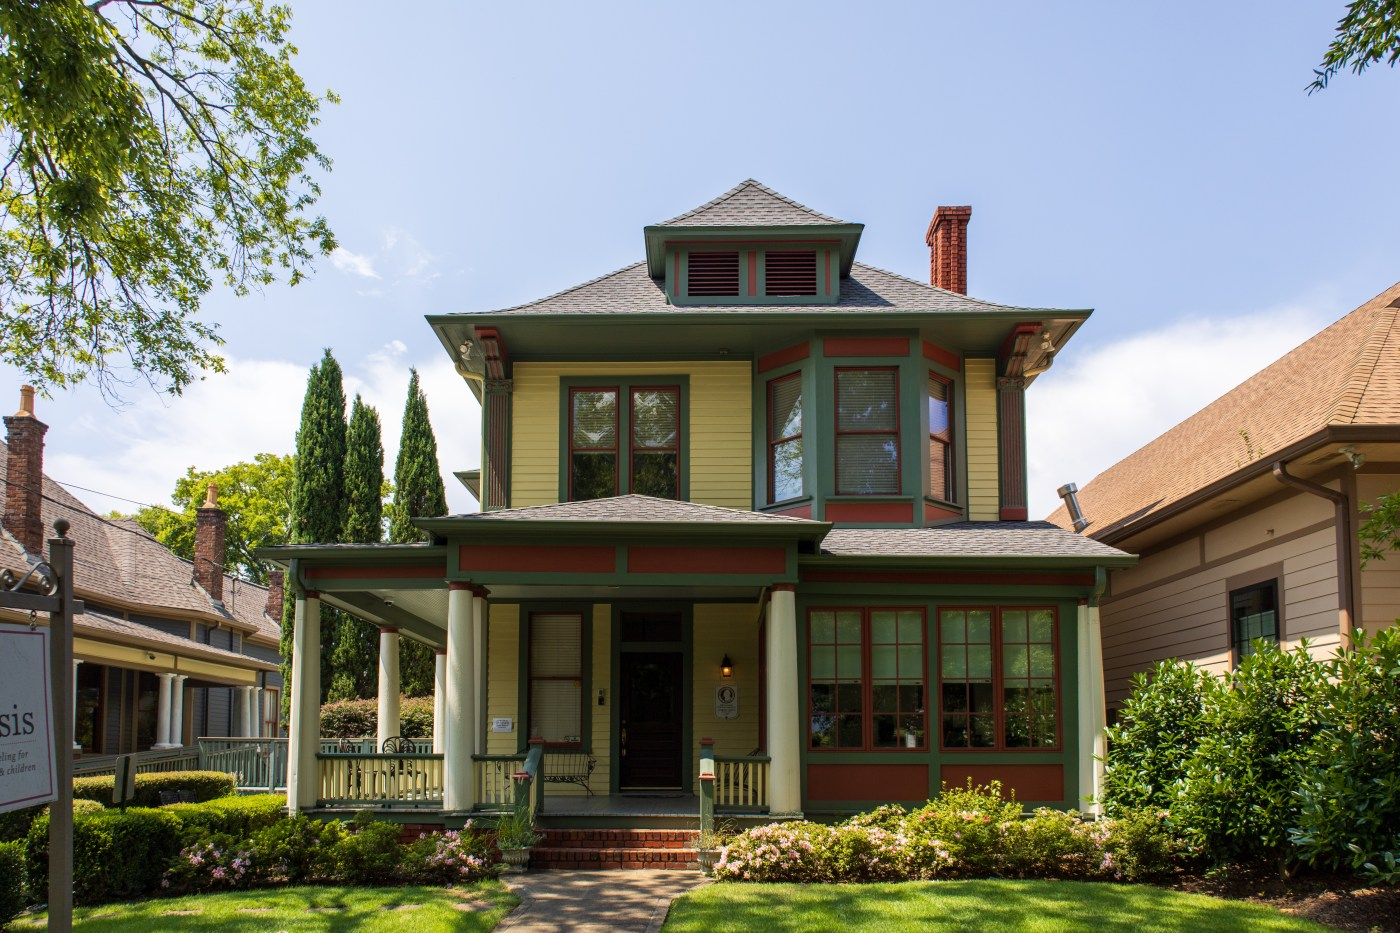 Anderson Place Historic District